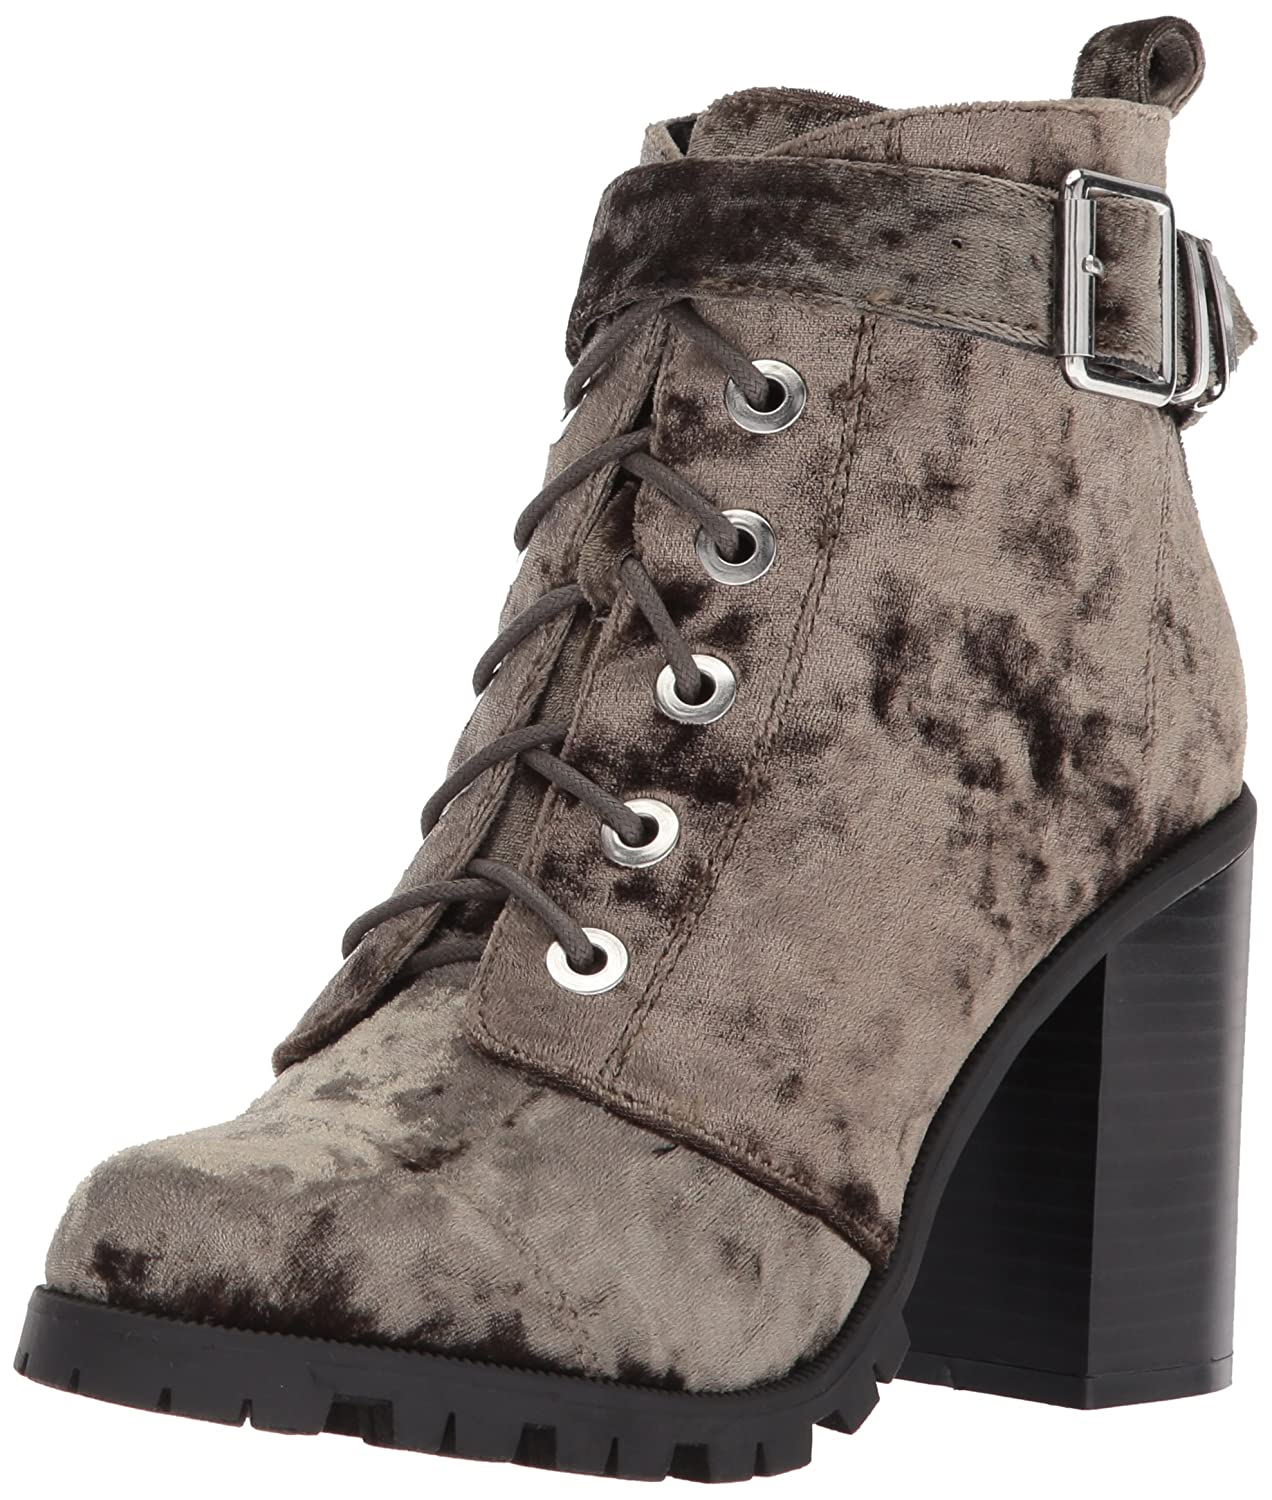 Qupid Women's B(M) Hiking Boot B075WKBLHL 7.5 B(M) Women's US|Khaki Crushed Velvet 1dc56b